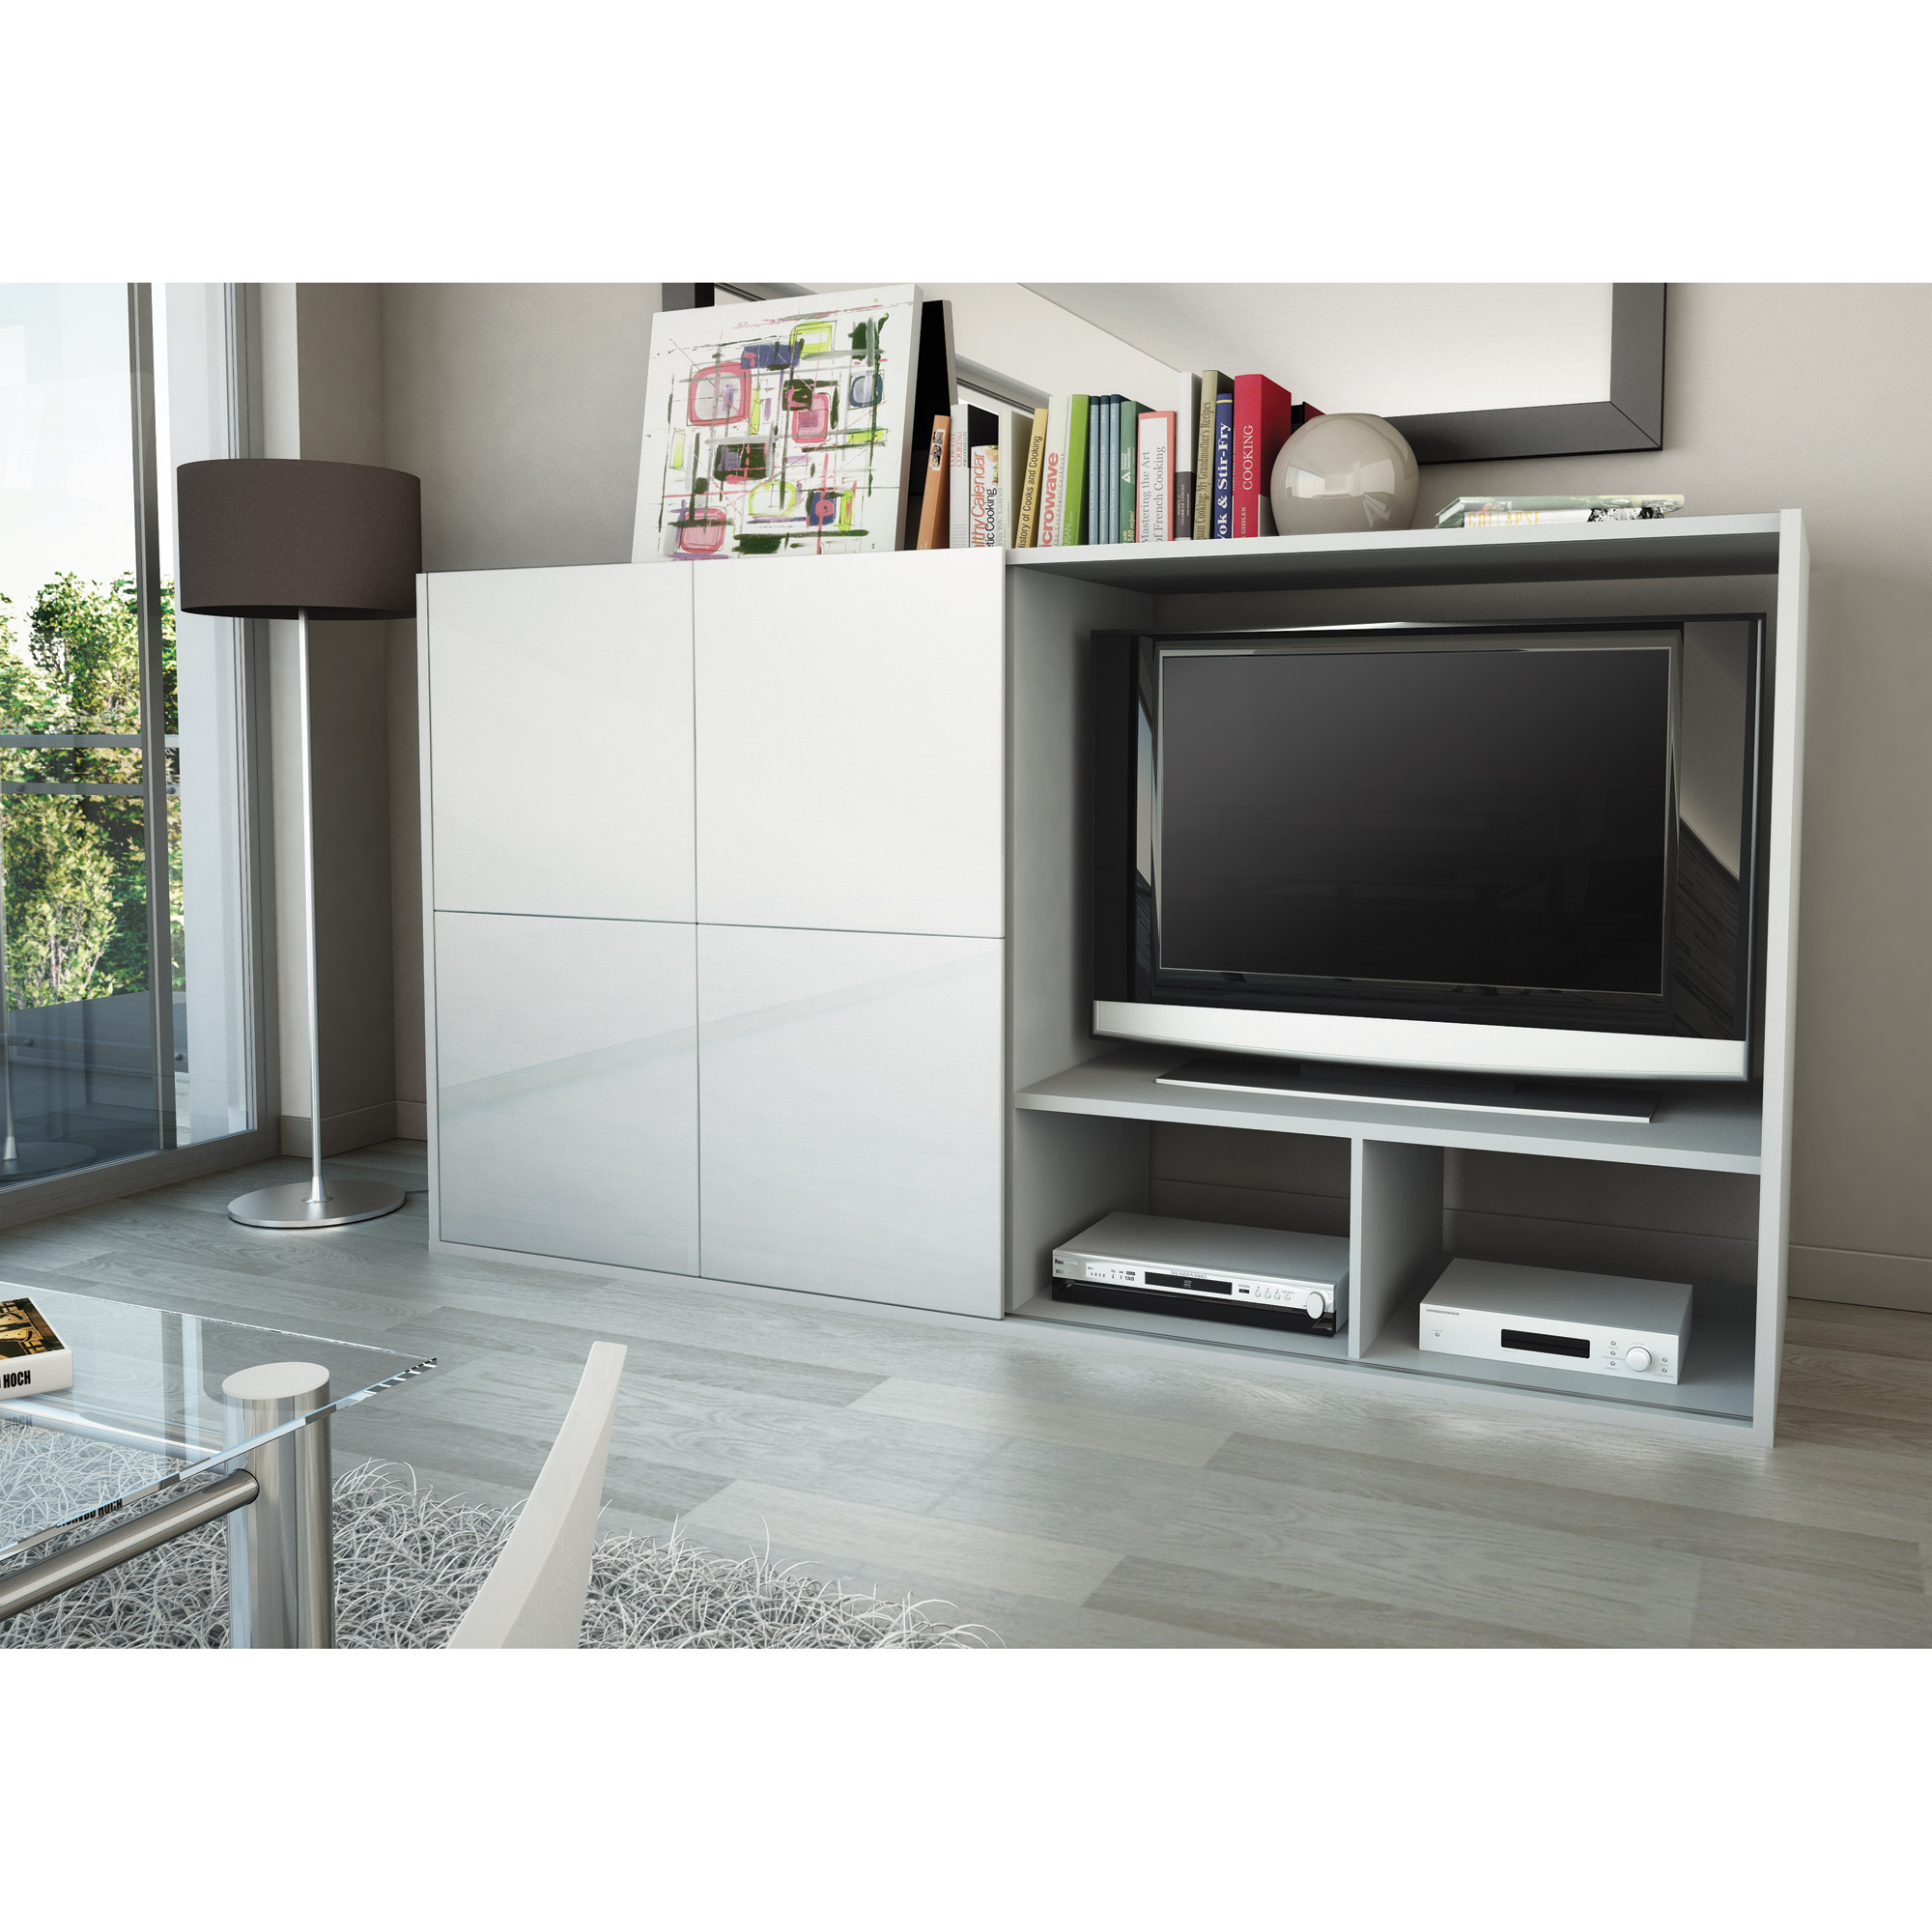 meuble tv hauteur 1m 2 id es de d coration int rieure french decor. Black Bedroom Furniture Sets. Home Design Ideas